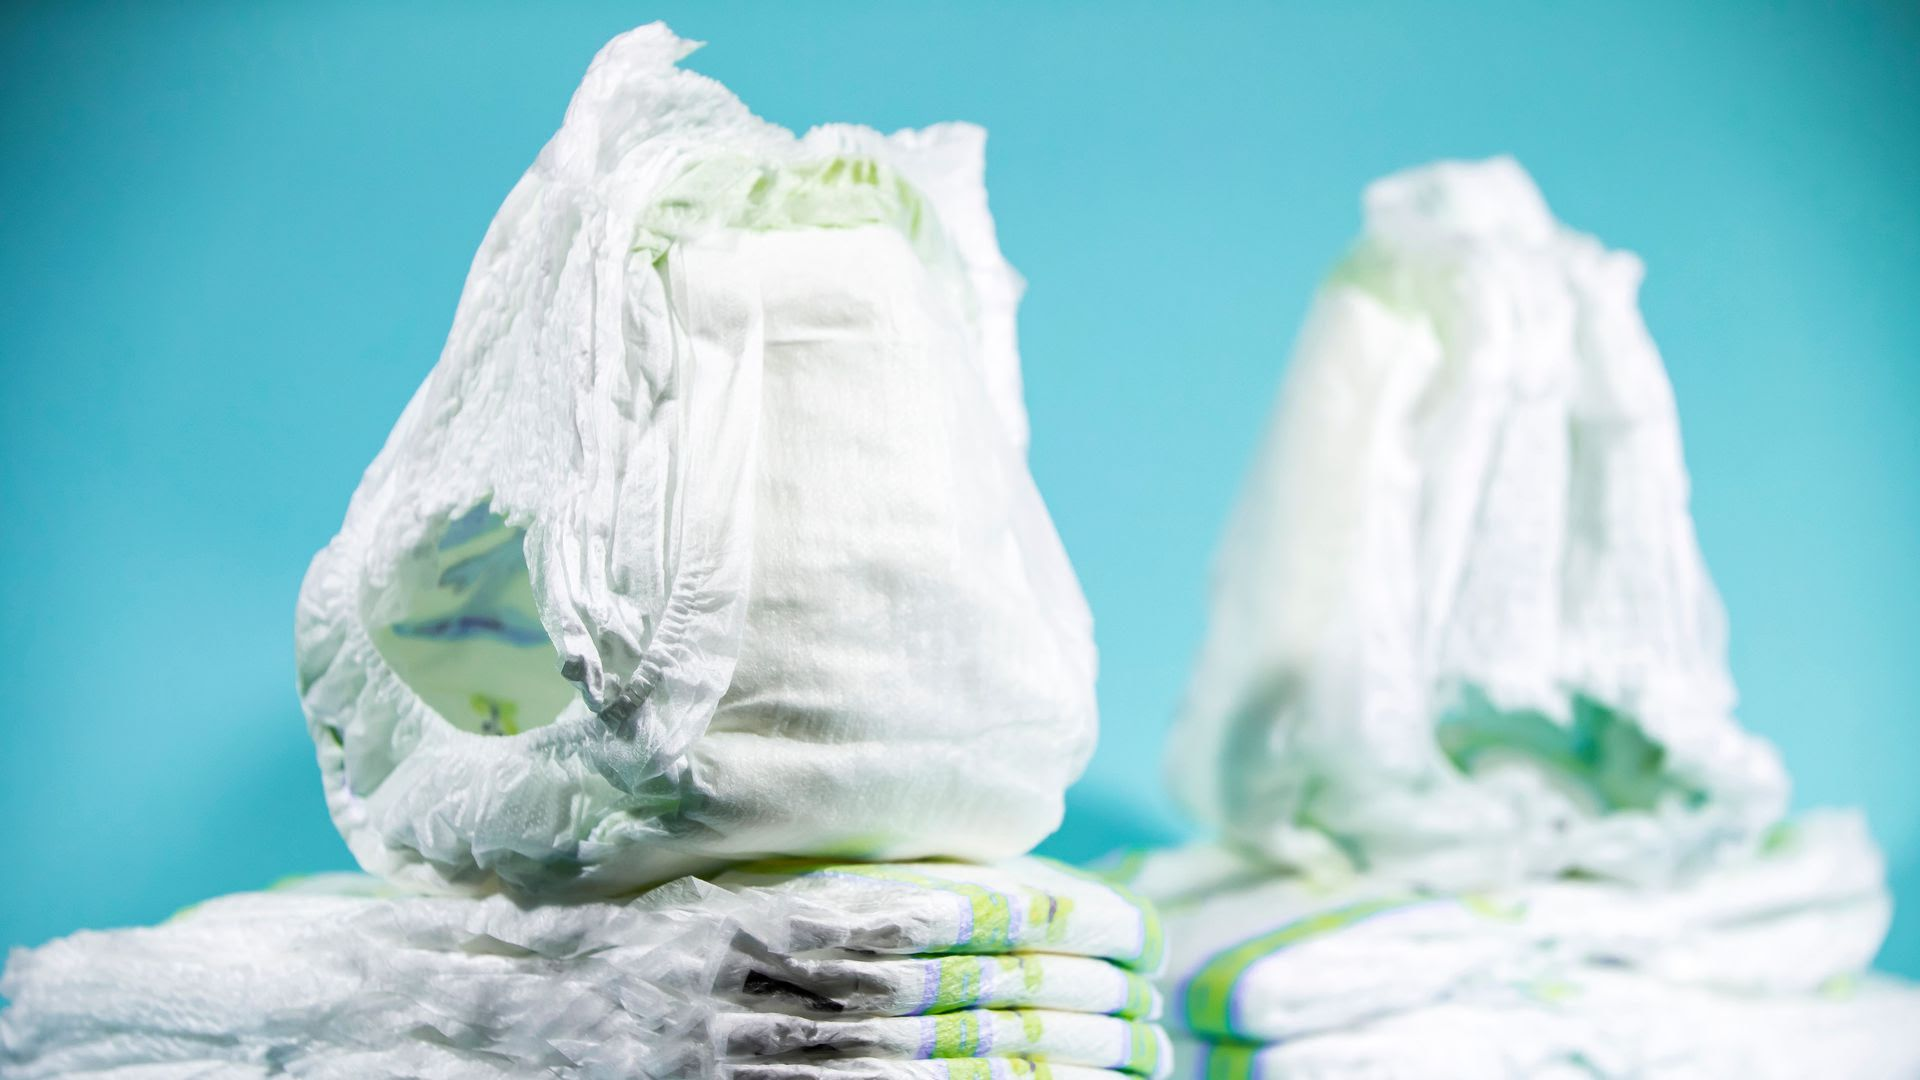 Sign of the times: An adult diaper boom